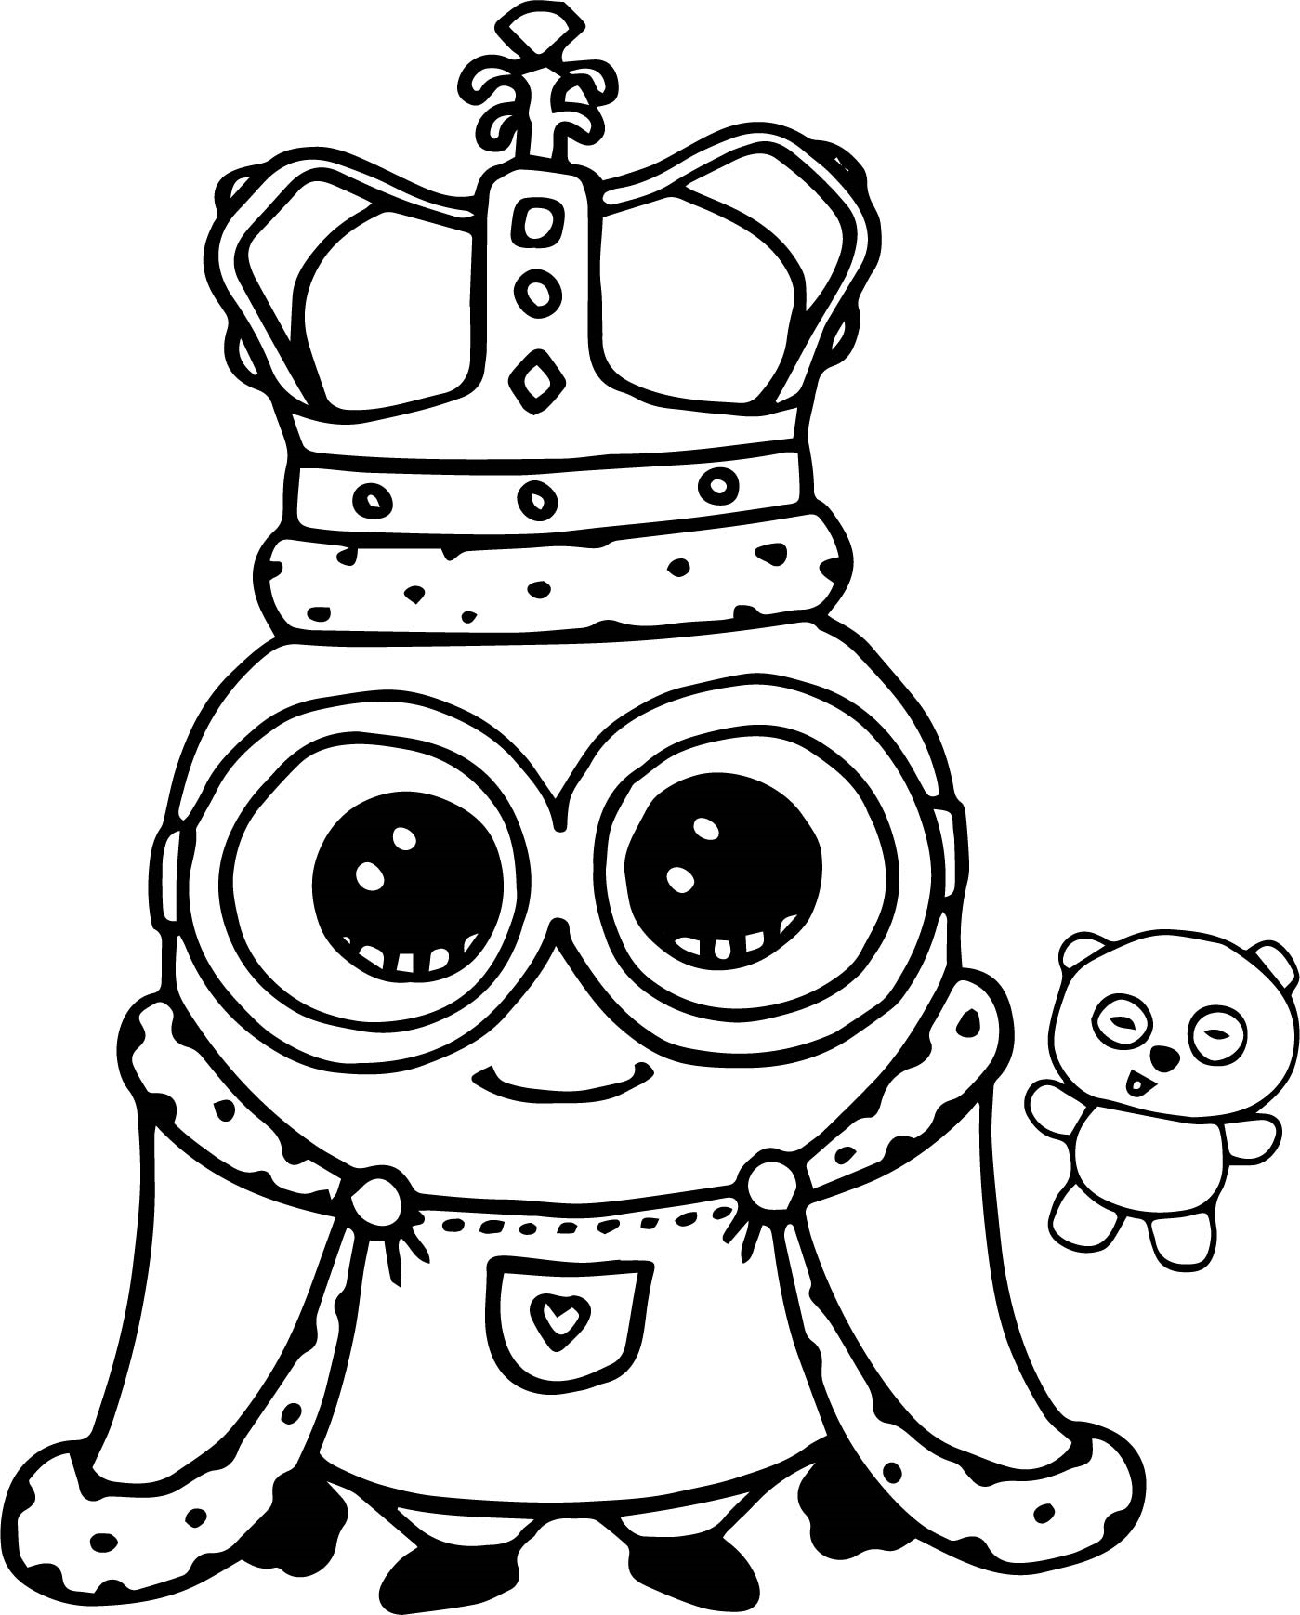 despicable me minions coloring pages despicable me alarm minions coloring page disney pages me despicable minions coloring